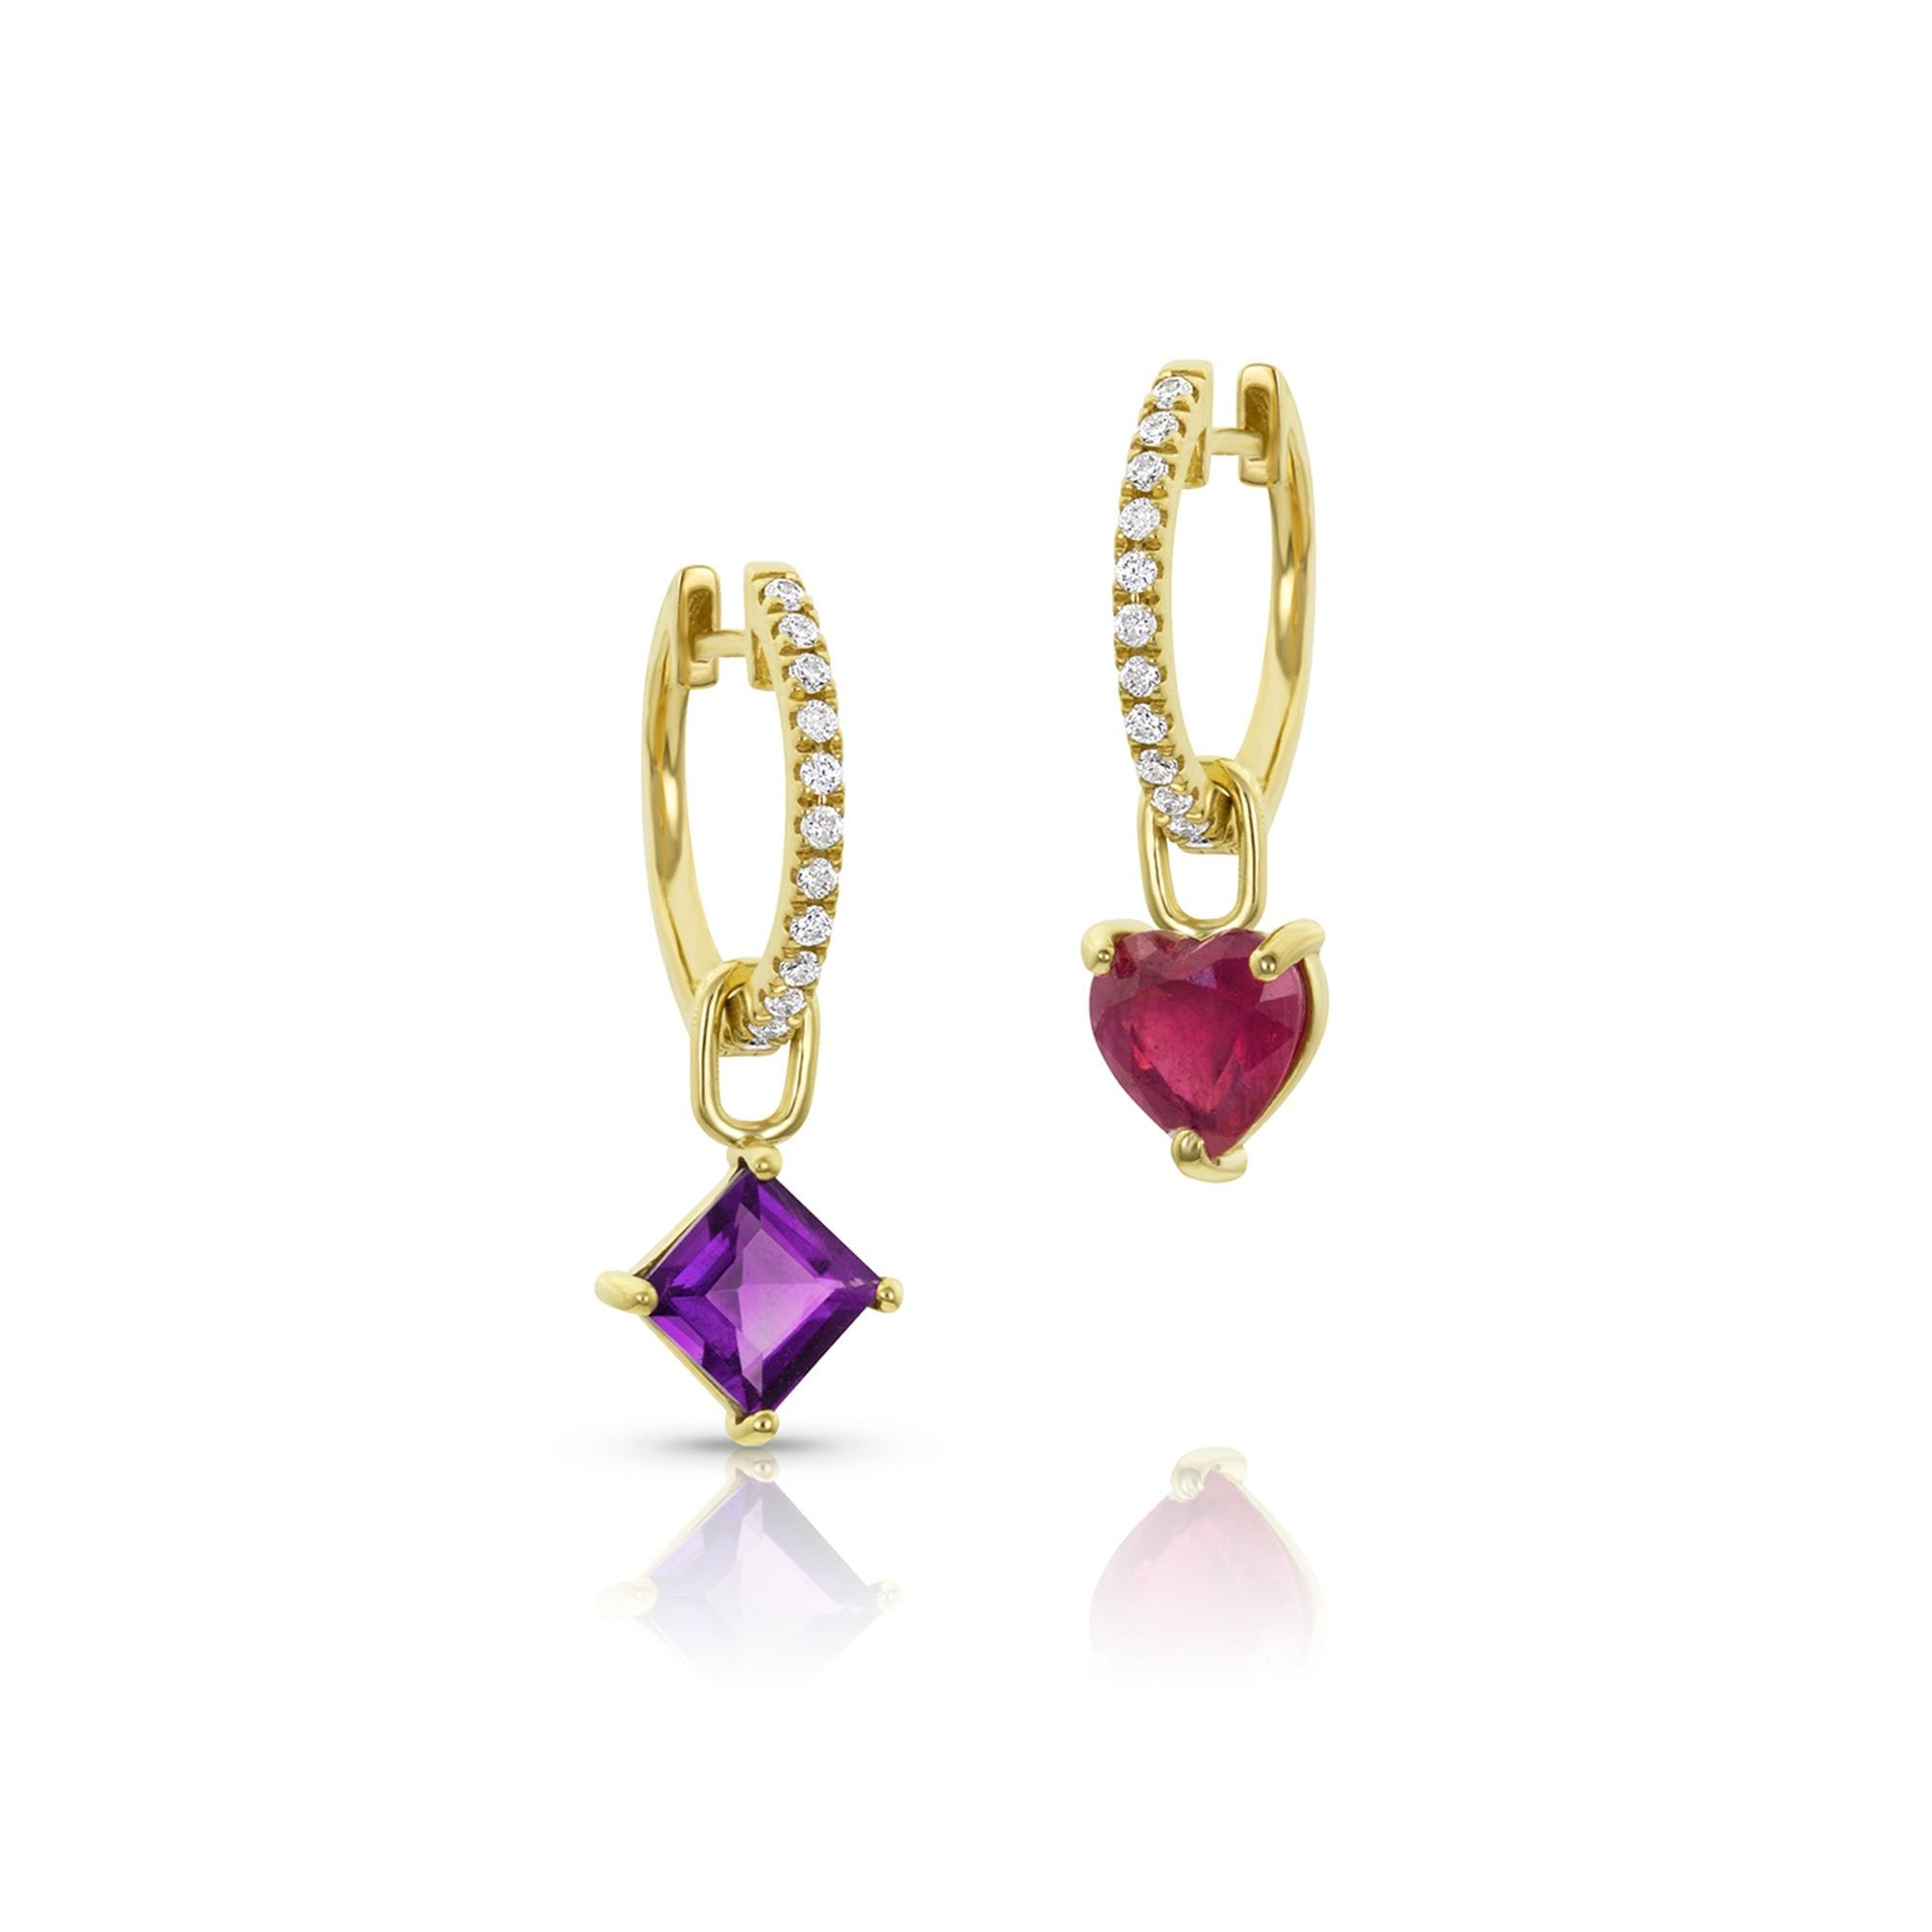 Vincents Fine Jewelry | M. Spalten | Gemdrop Mini Hoop Earrings